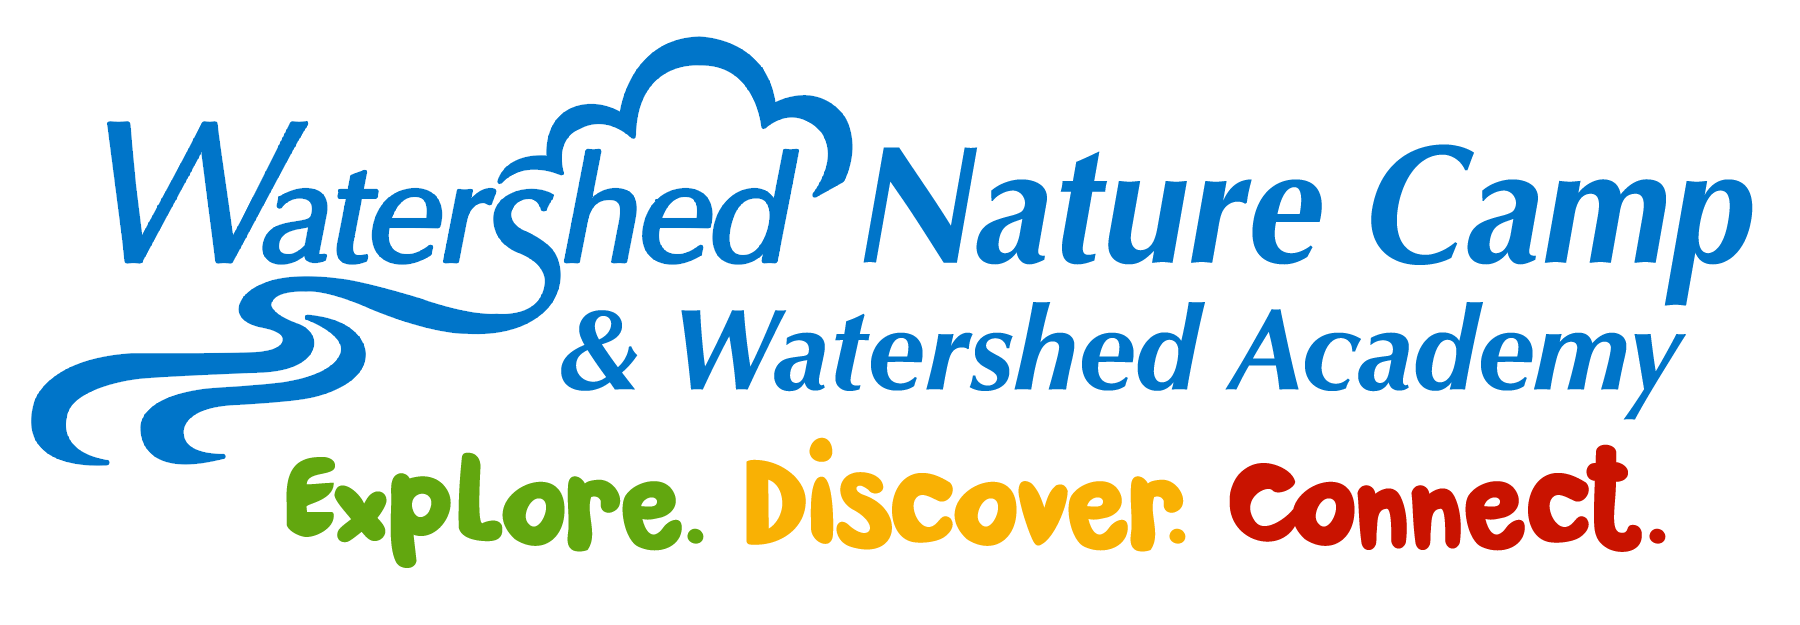 Watershed Nature Camp